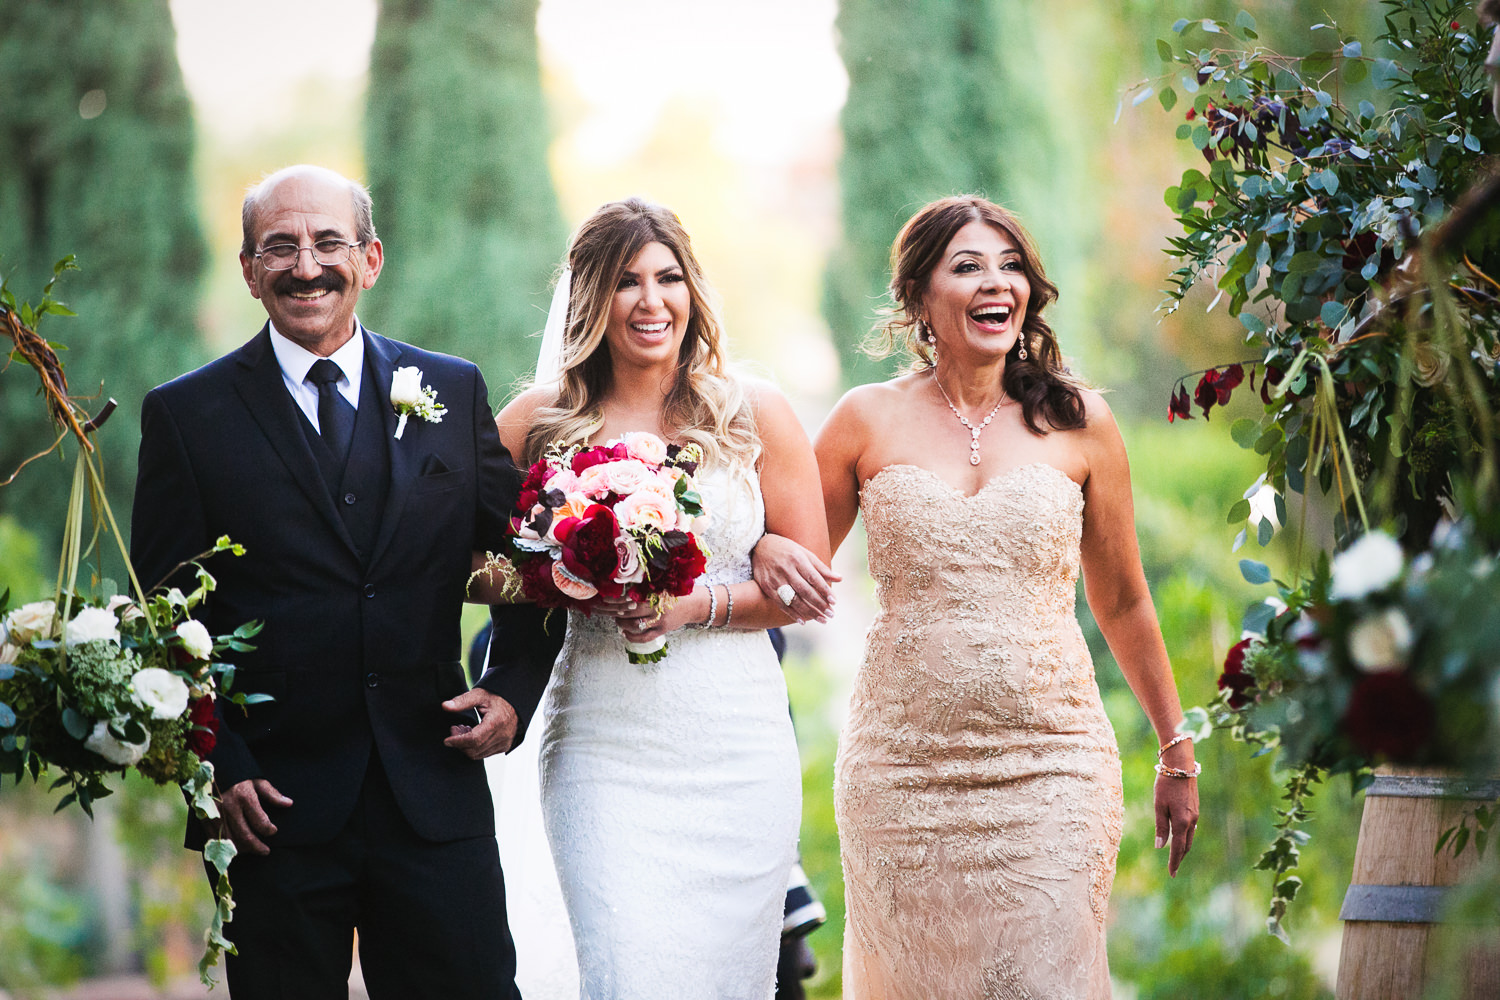 walking down the aisle in the olive garden at Hummingbird Nest wedding by Callaway Gable